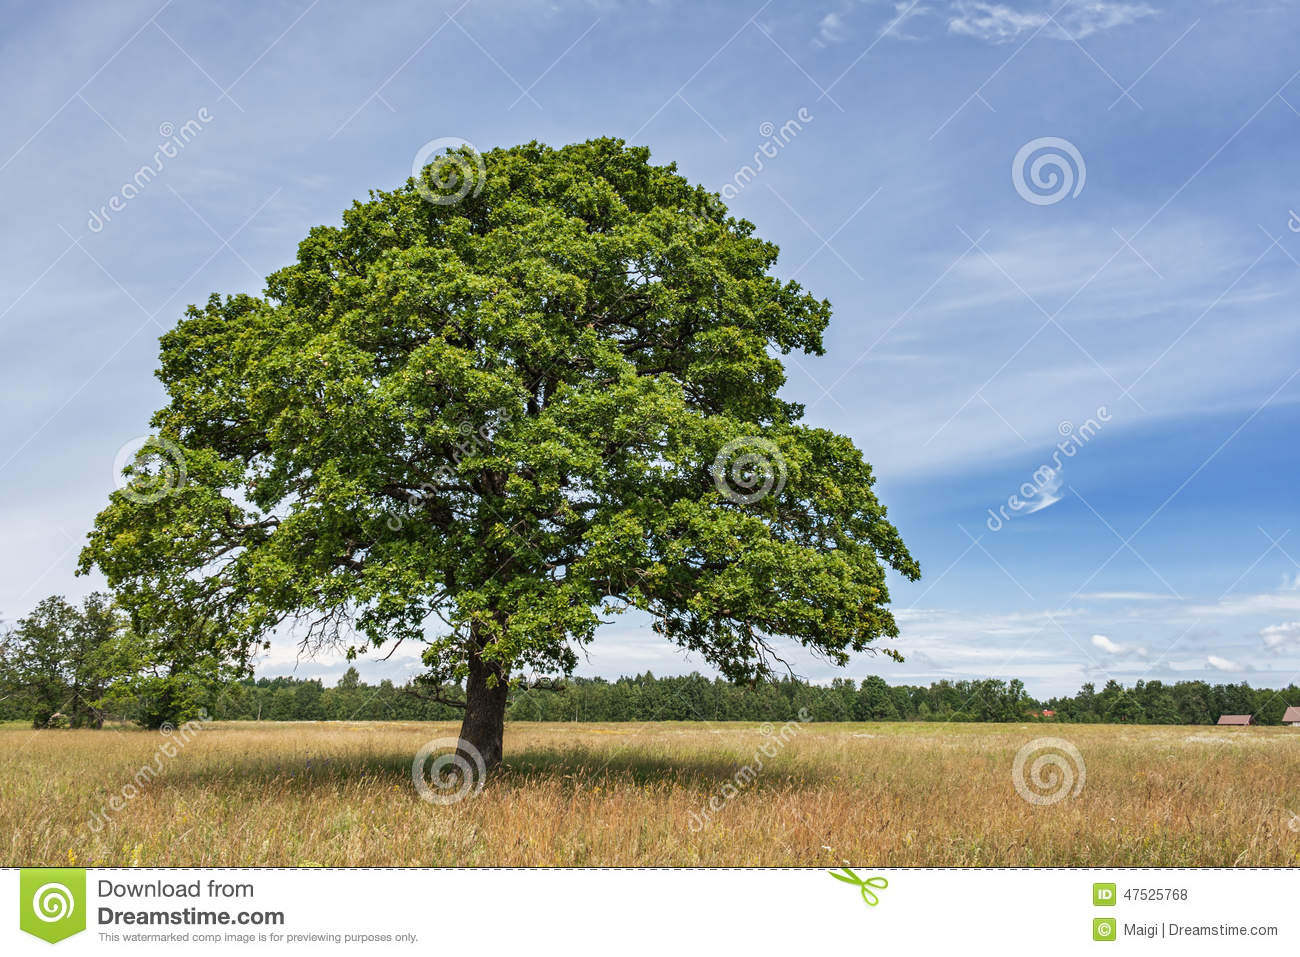 Download Lonely Oak Tree stock photo. Image of natural, green - 47525768